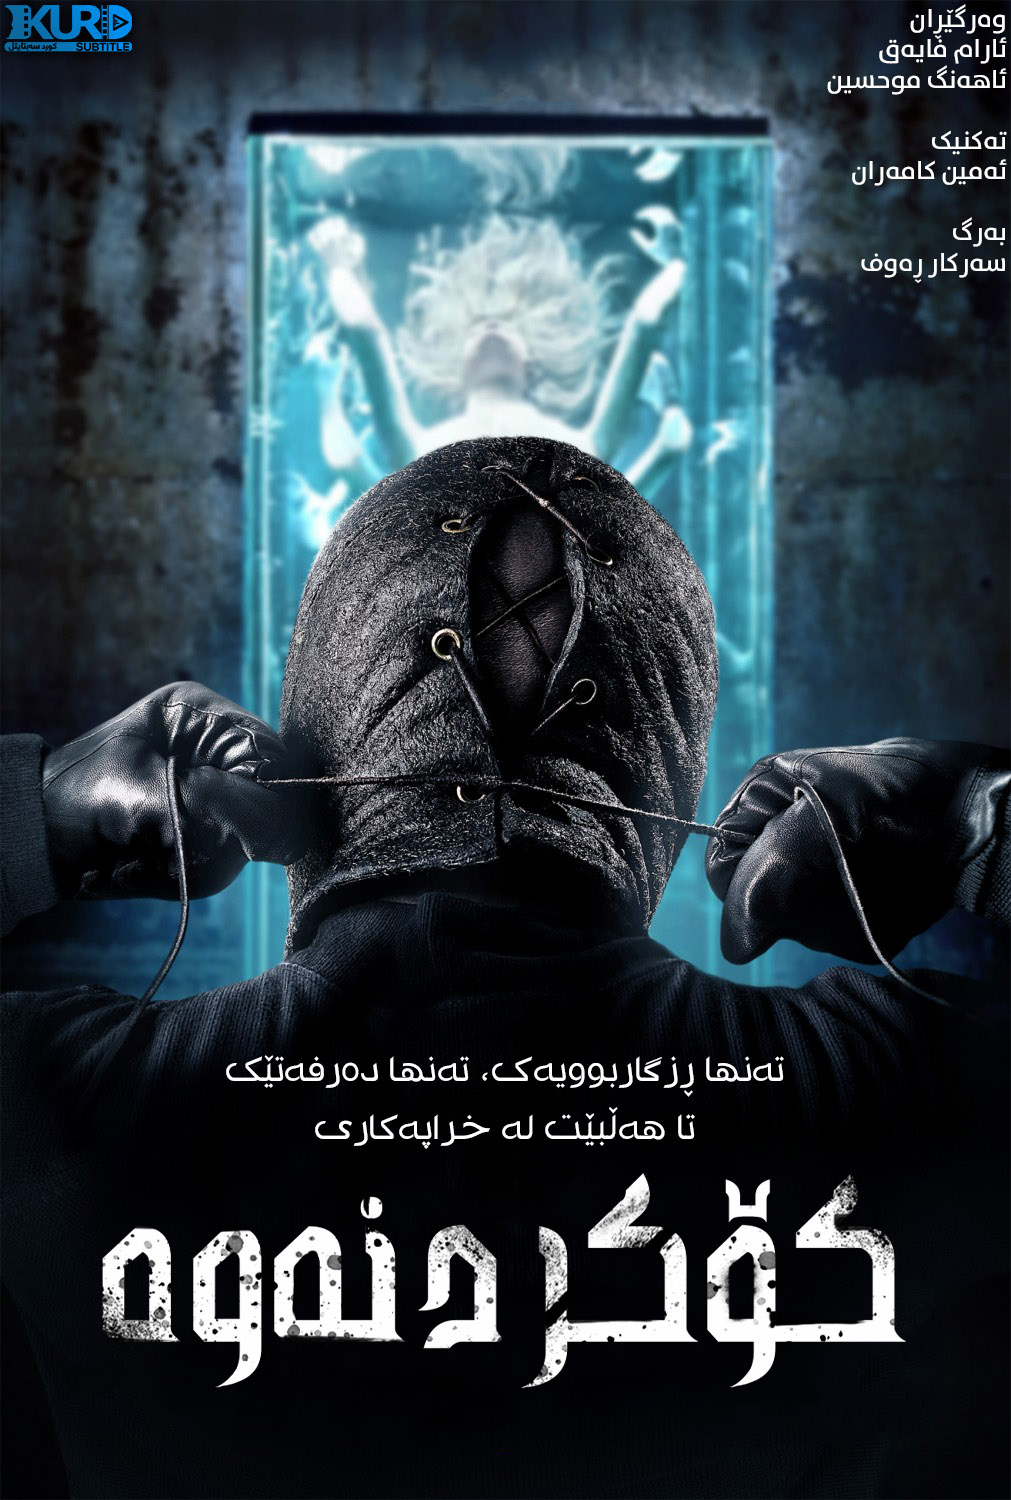 The Collection kurdish poster